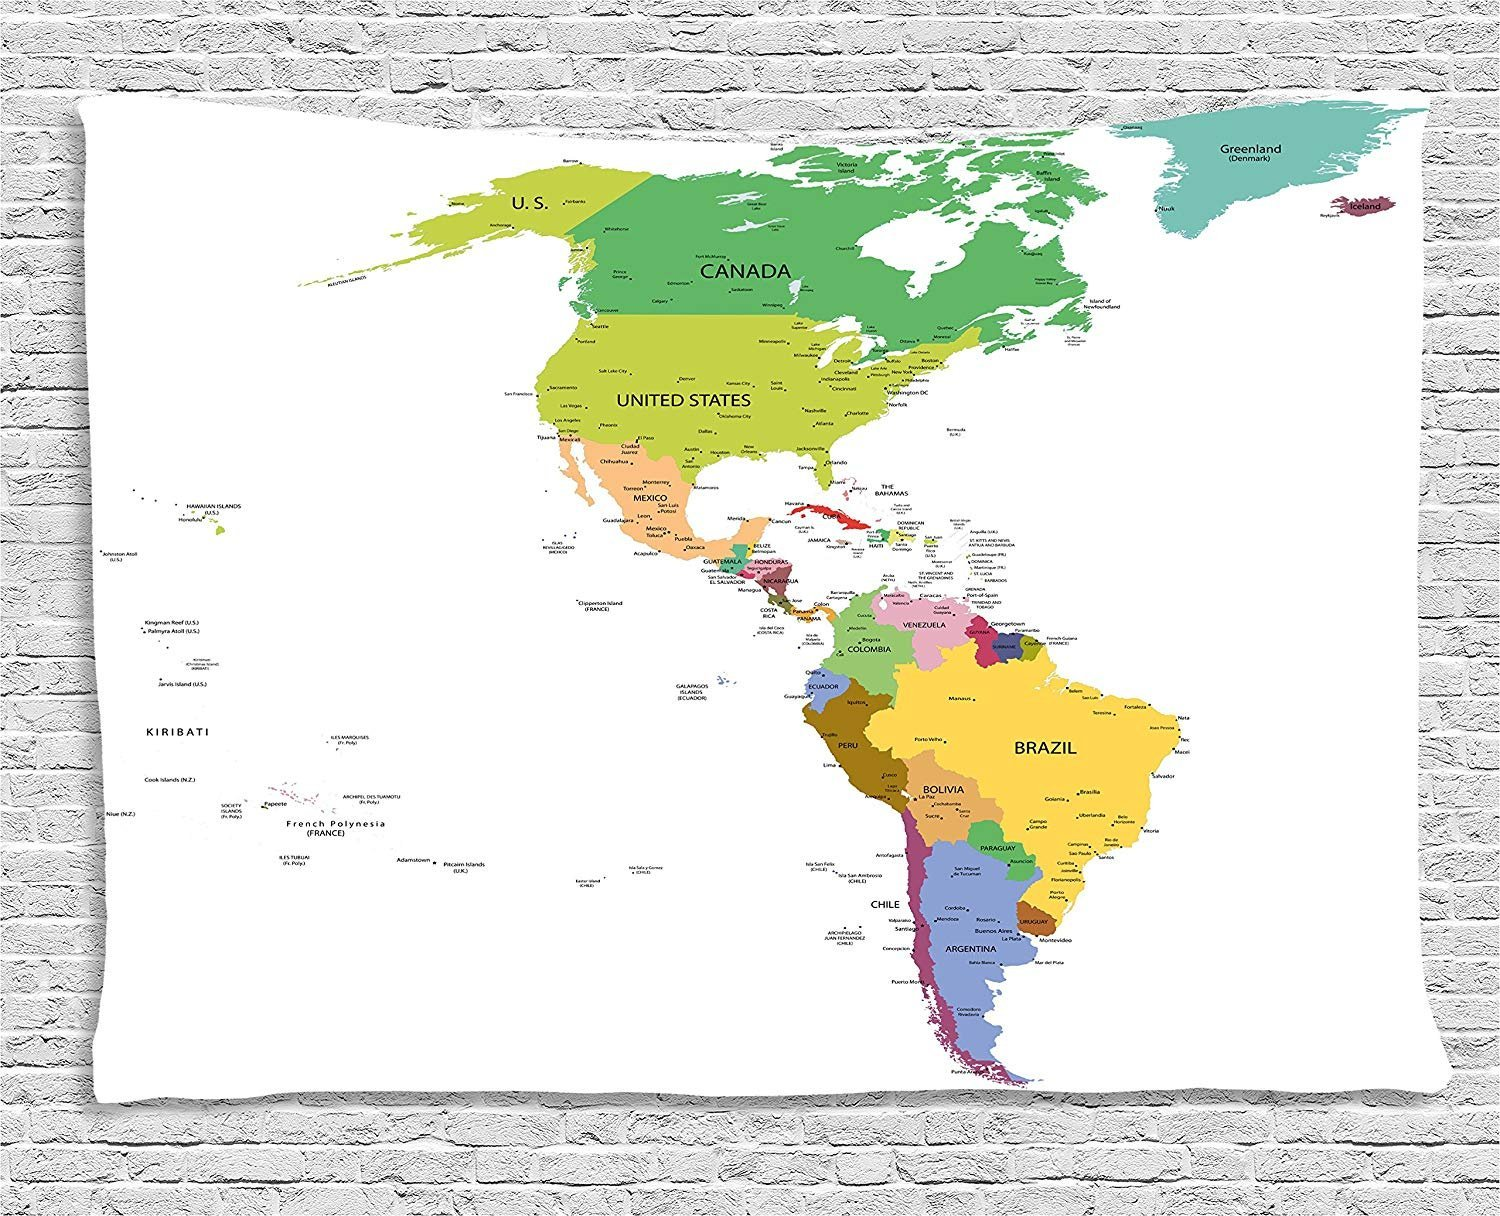 XHFITCLtd Map Tapestry, Map of South and North America with Countries Capitals and Major Cities Colorful Design, Wall Hanging for Bedroom Living Room Dorm, 80 W X 60 L Inches, Multicolor